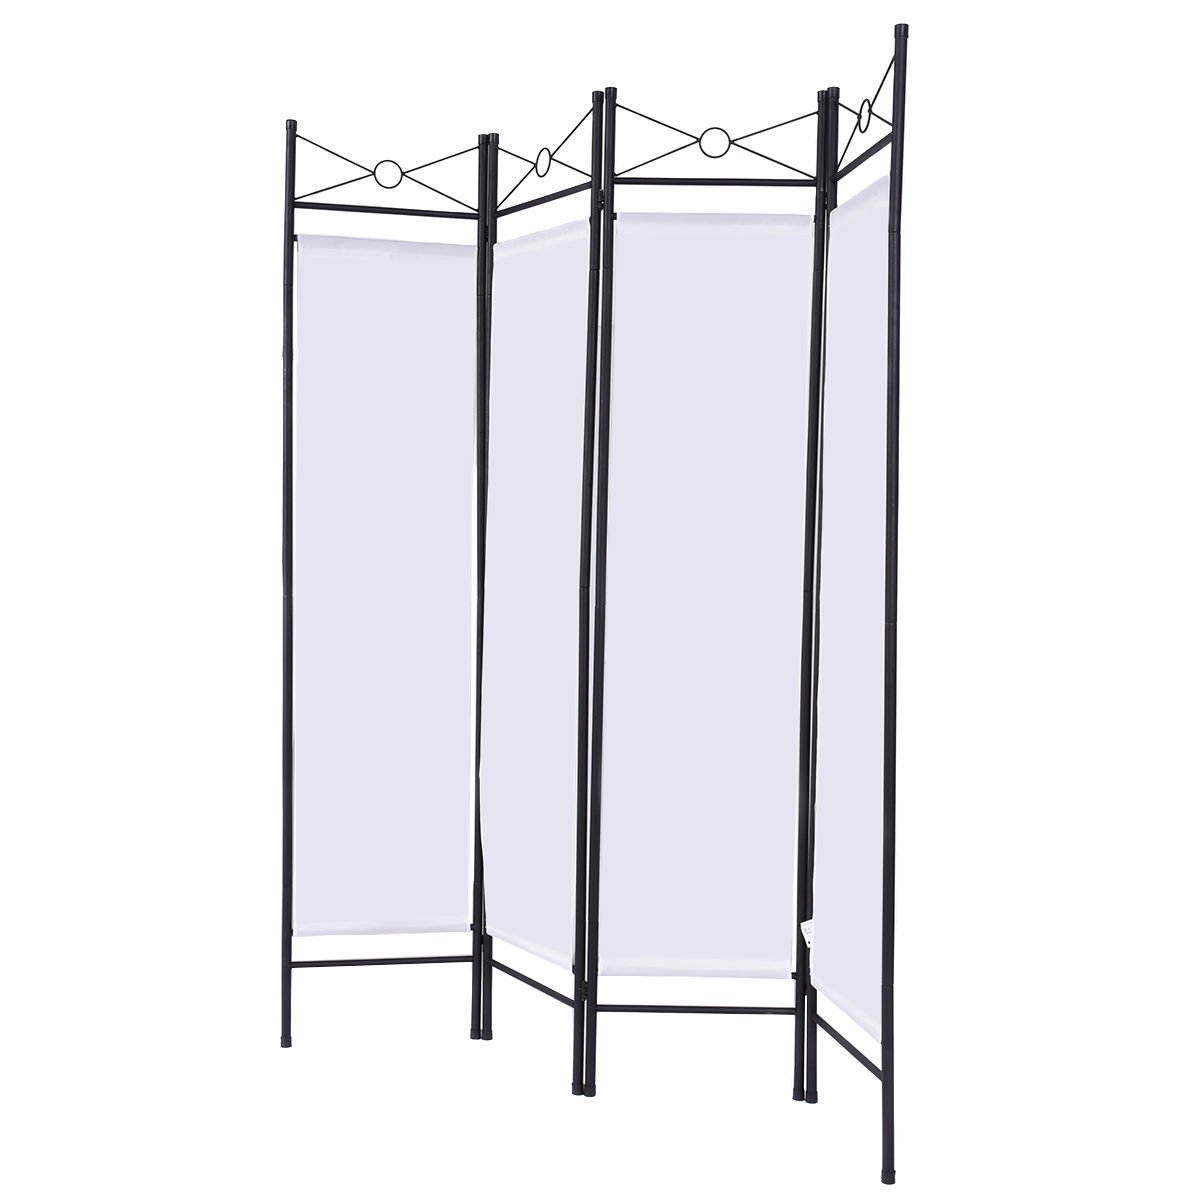 White 4 Panel Room Divider Privacy Folding Screen Home Office Fabric Metal Frame + FREE E - Book by White Bear & Brown Rabbit (Image #3)